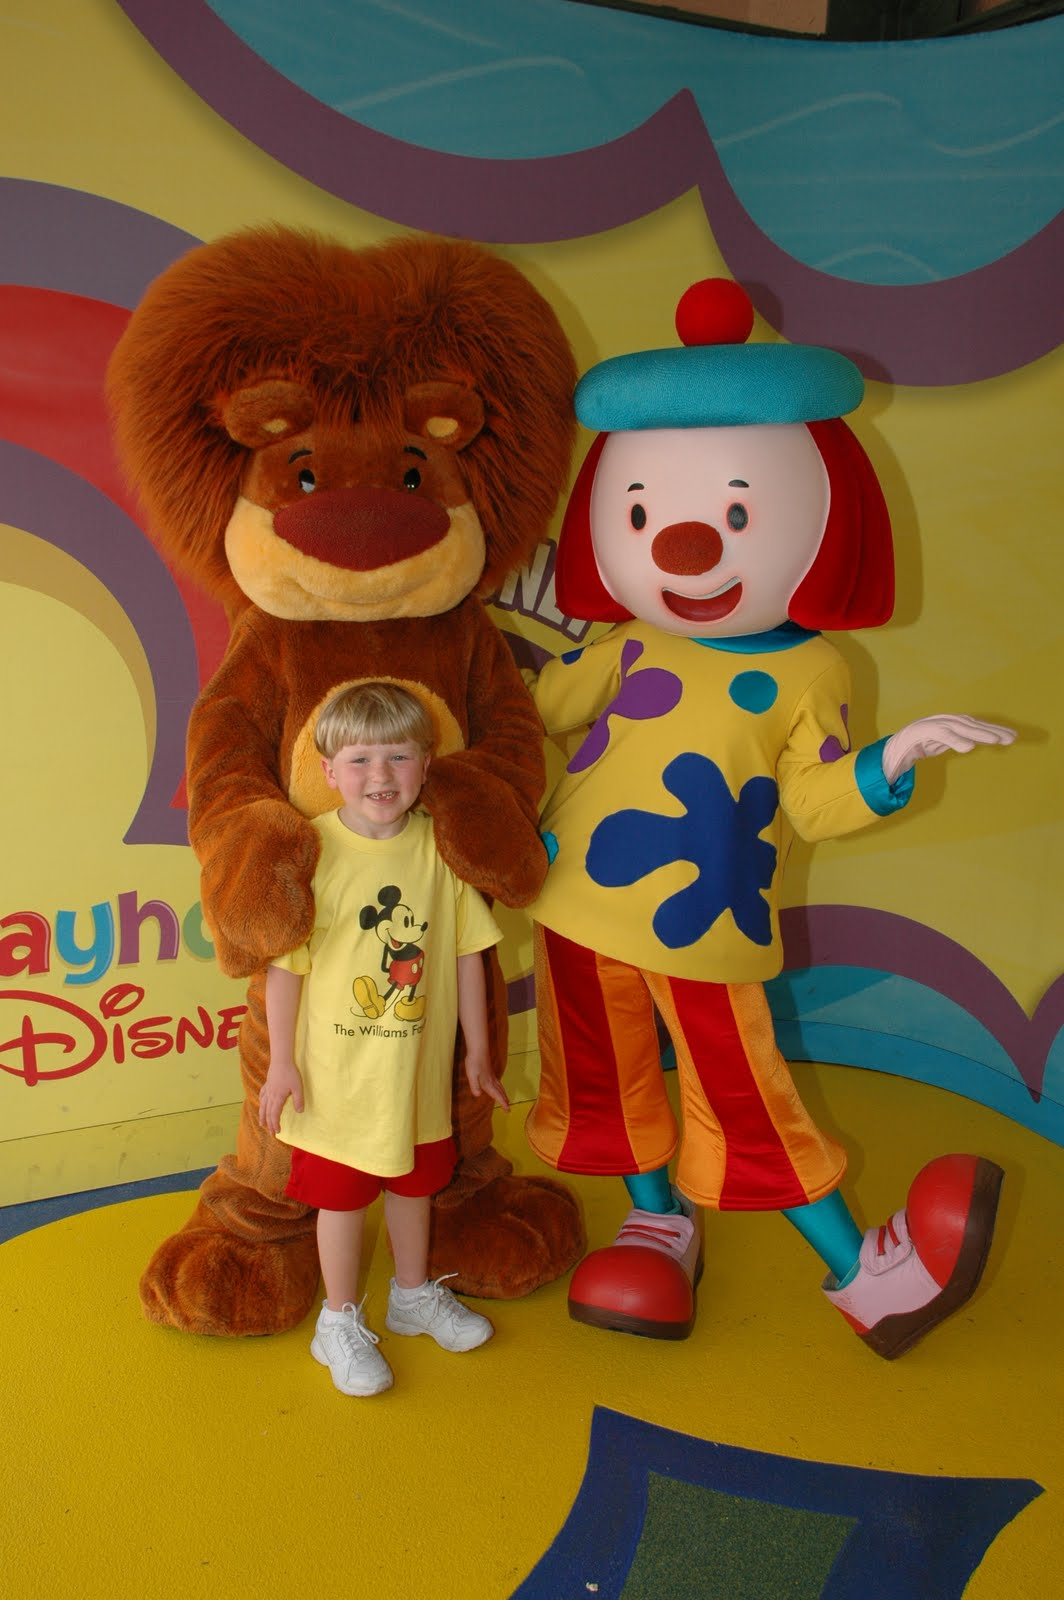 Williams Family: Meeting the Characters from Playhouse Disney